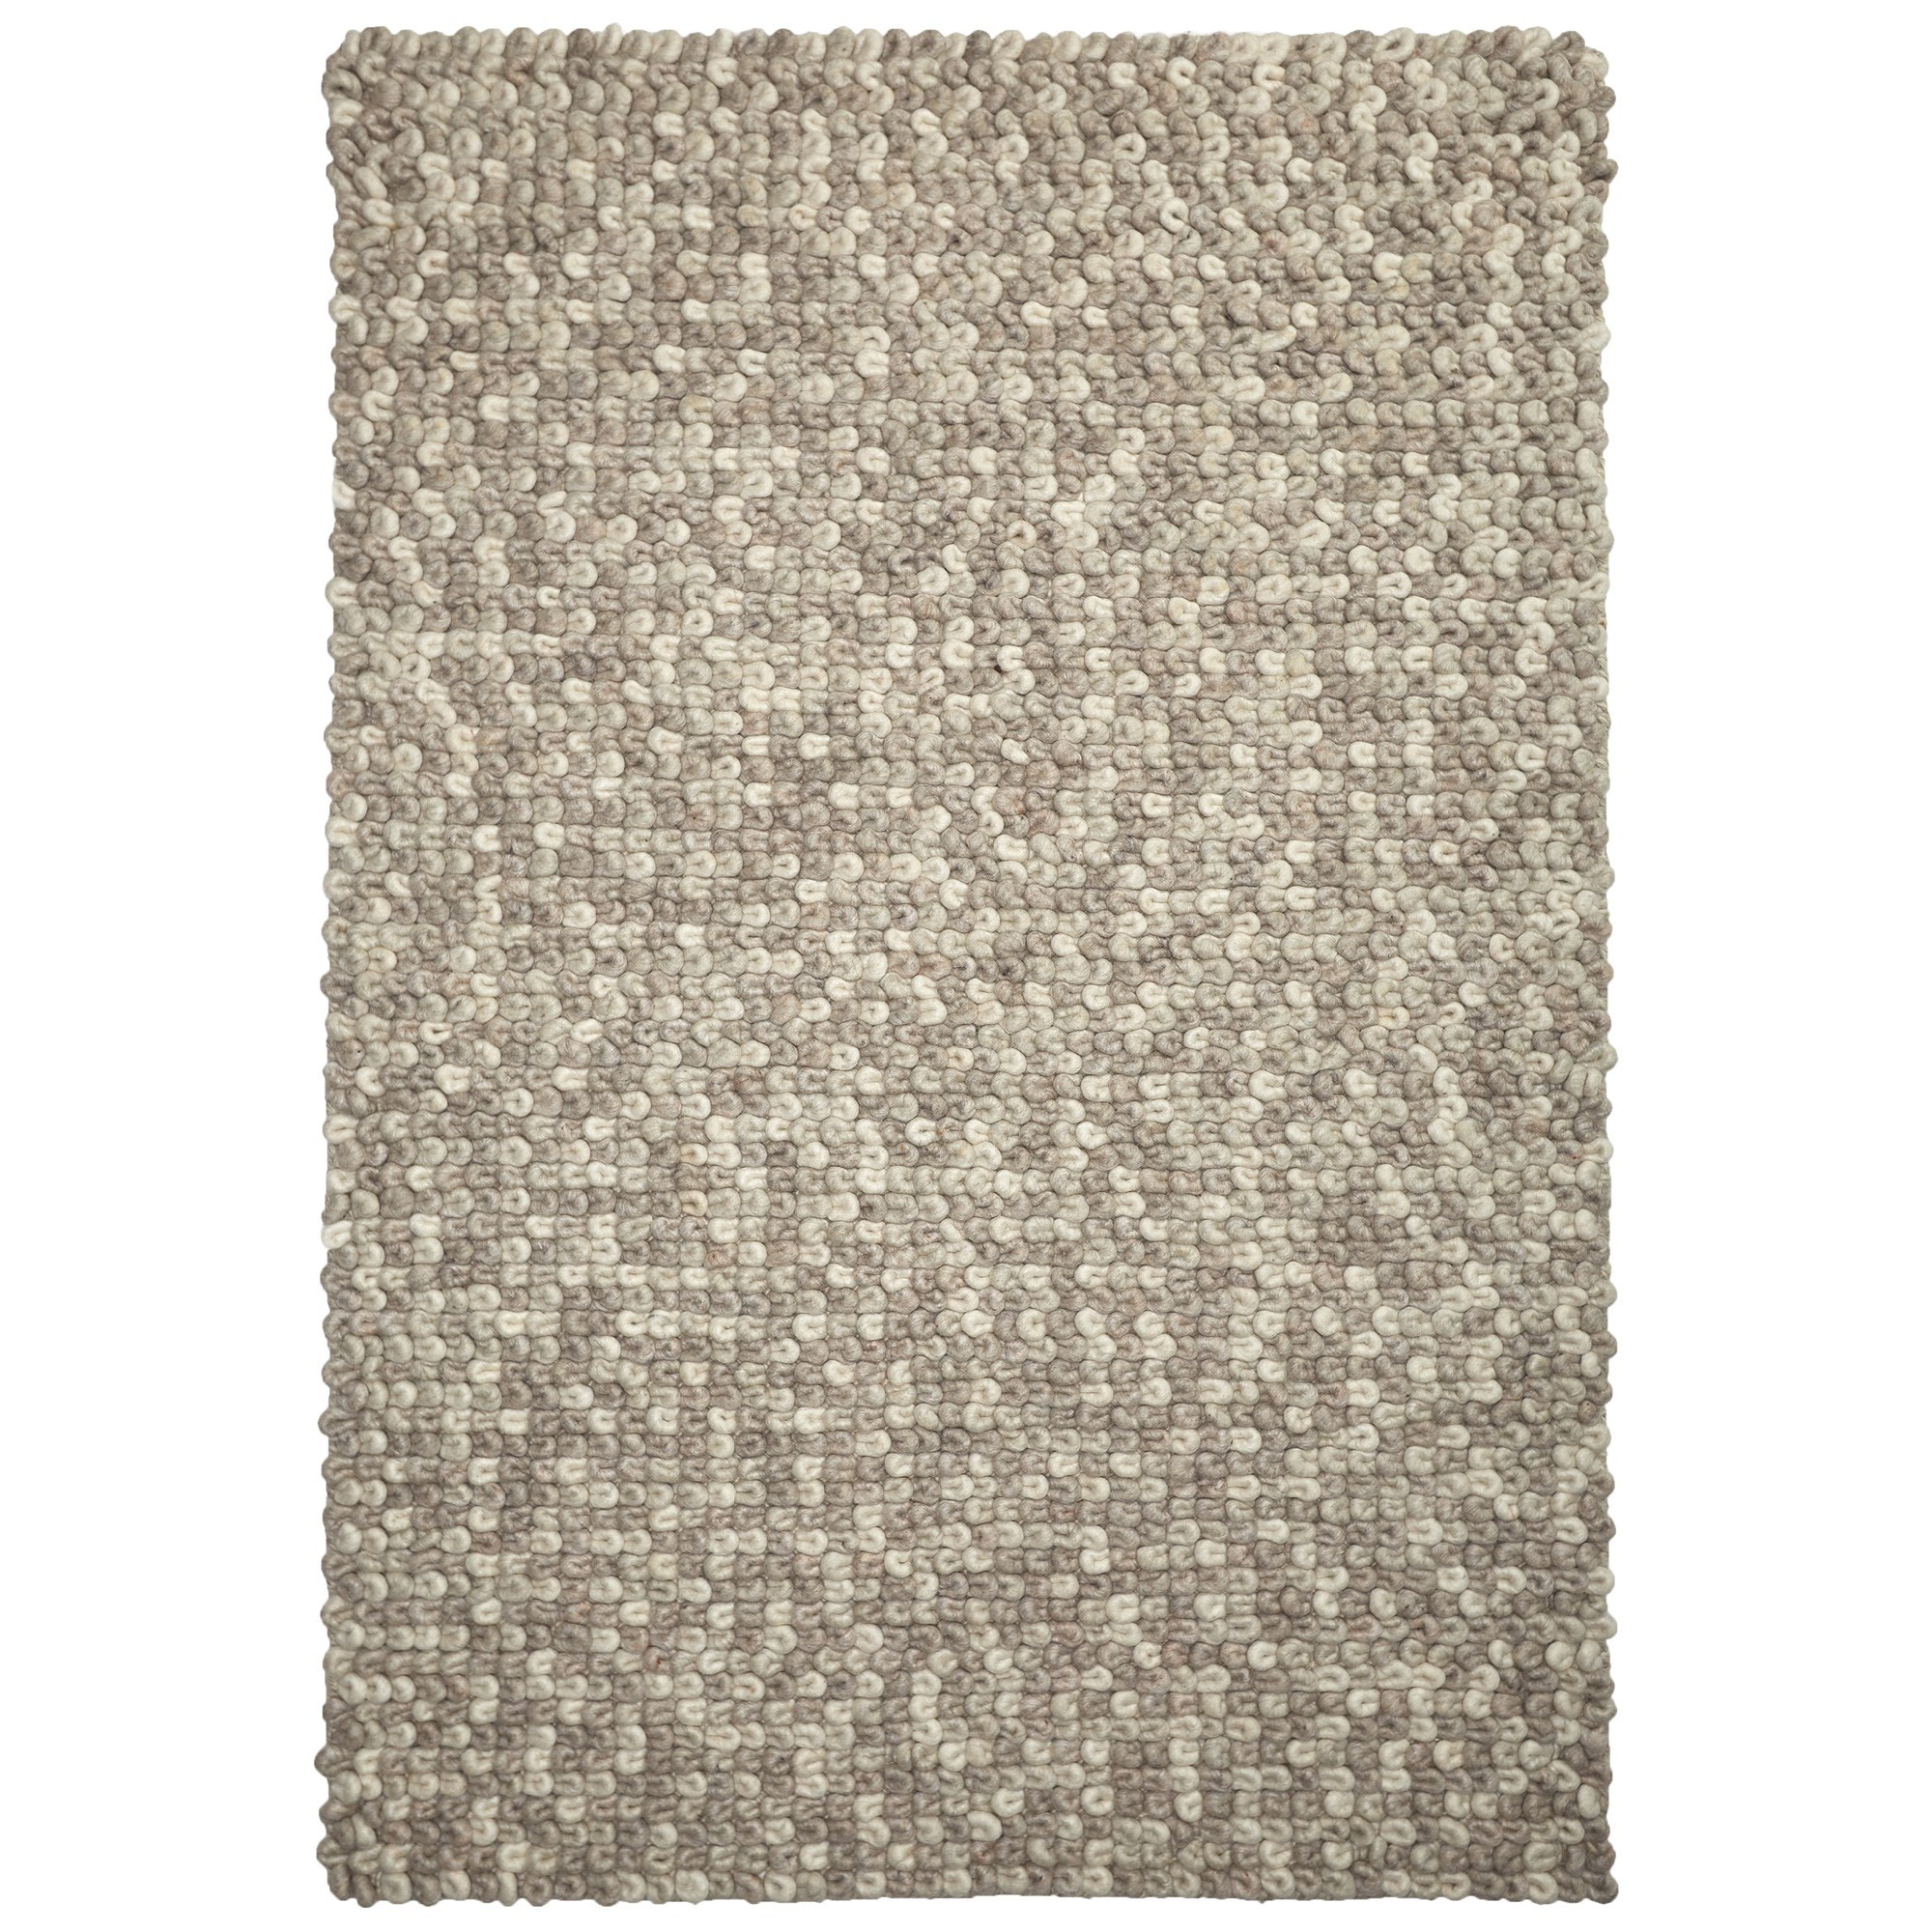 Sleeping Loop Wool Rug, 330x240cm, Latte